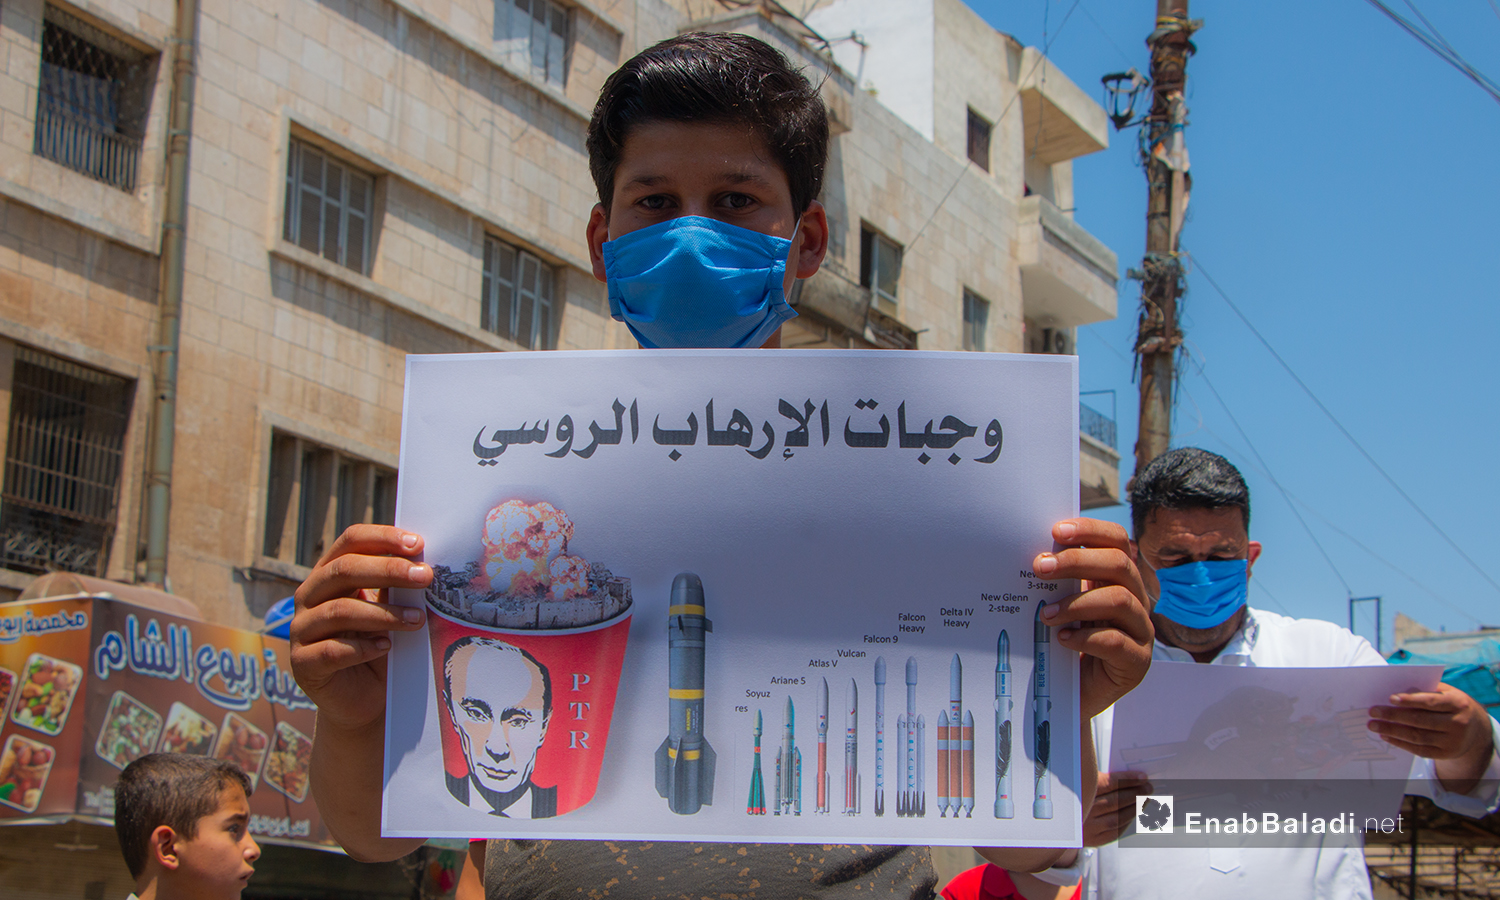 A child holding a sign on the missiles' types that targeted the Syrian people – 10 July 2020 (Enab Baladi / Anas al-Khouli)